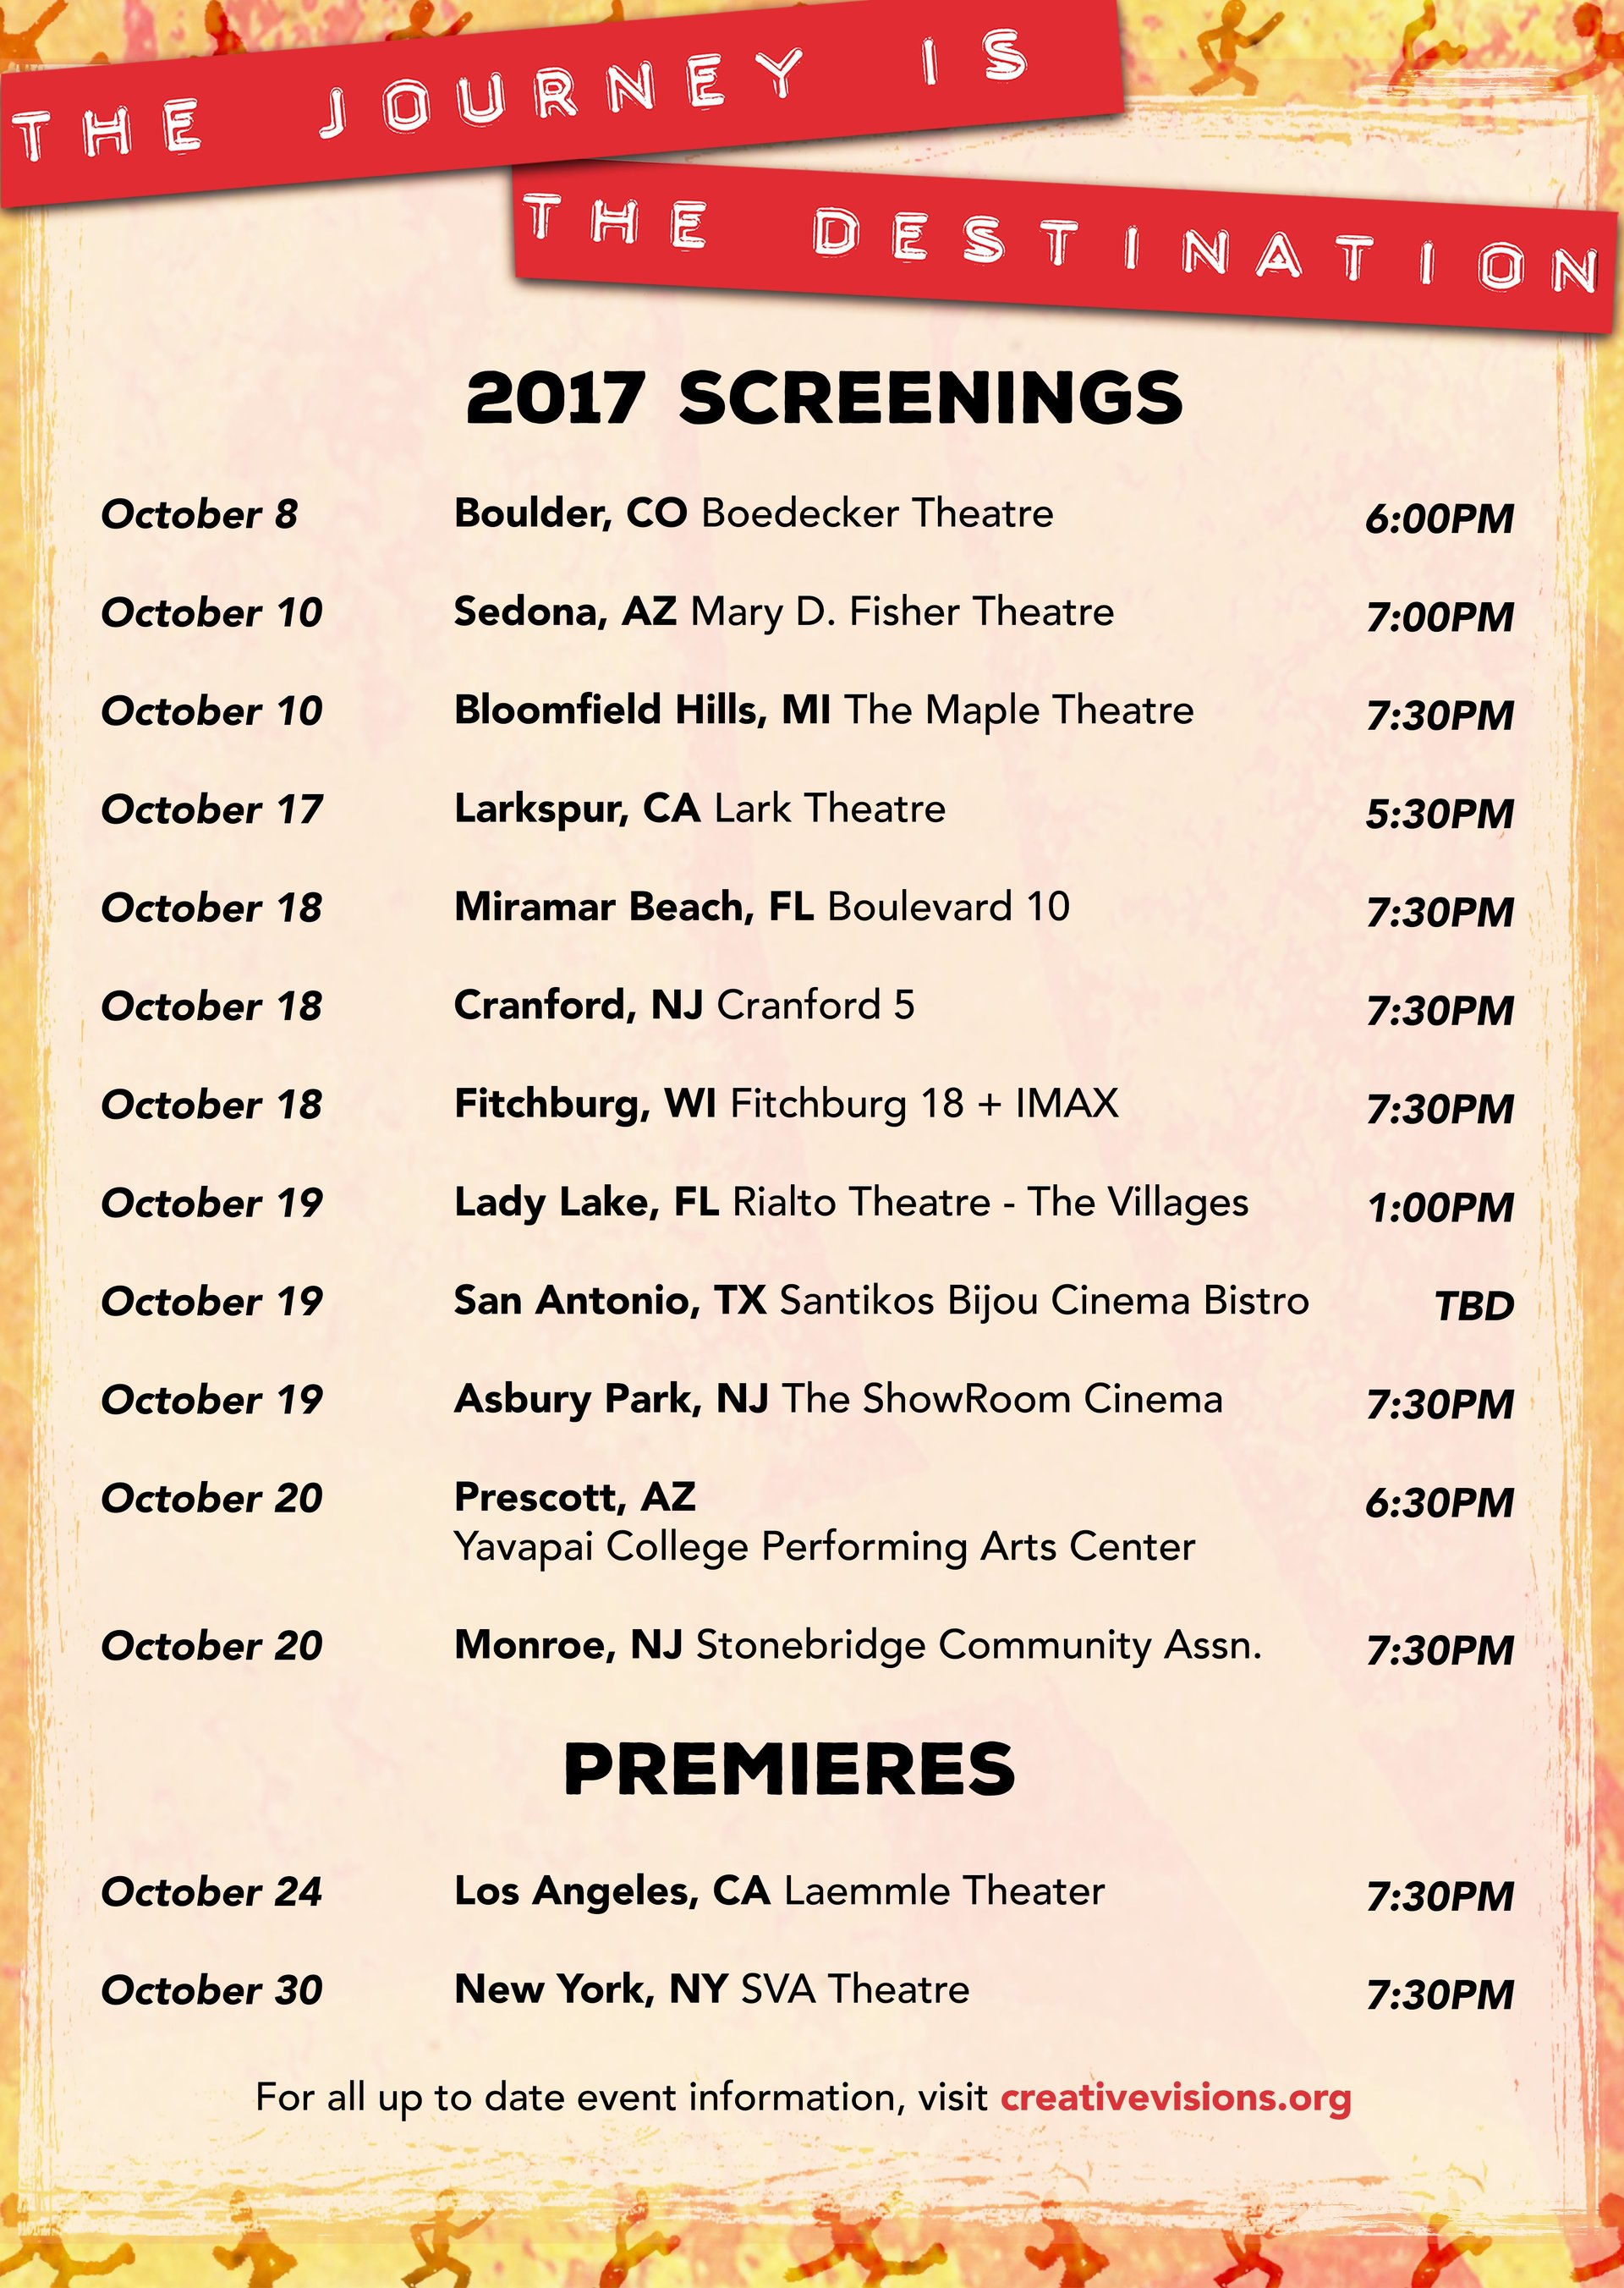 The Journey is the Destination Screenings List - October